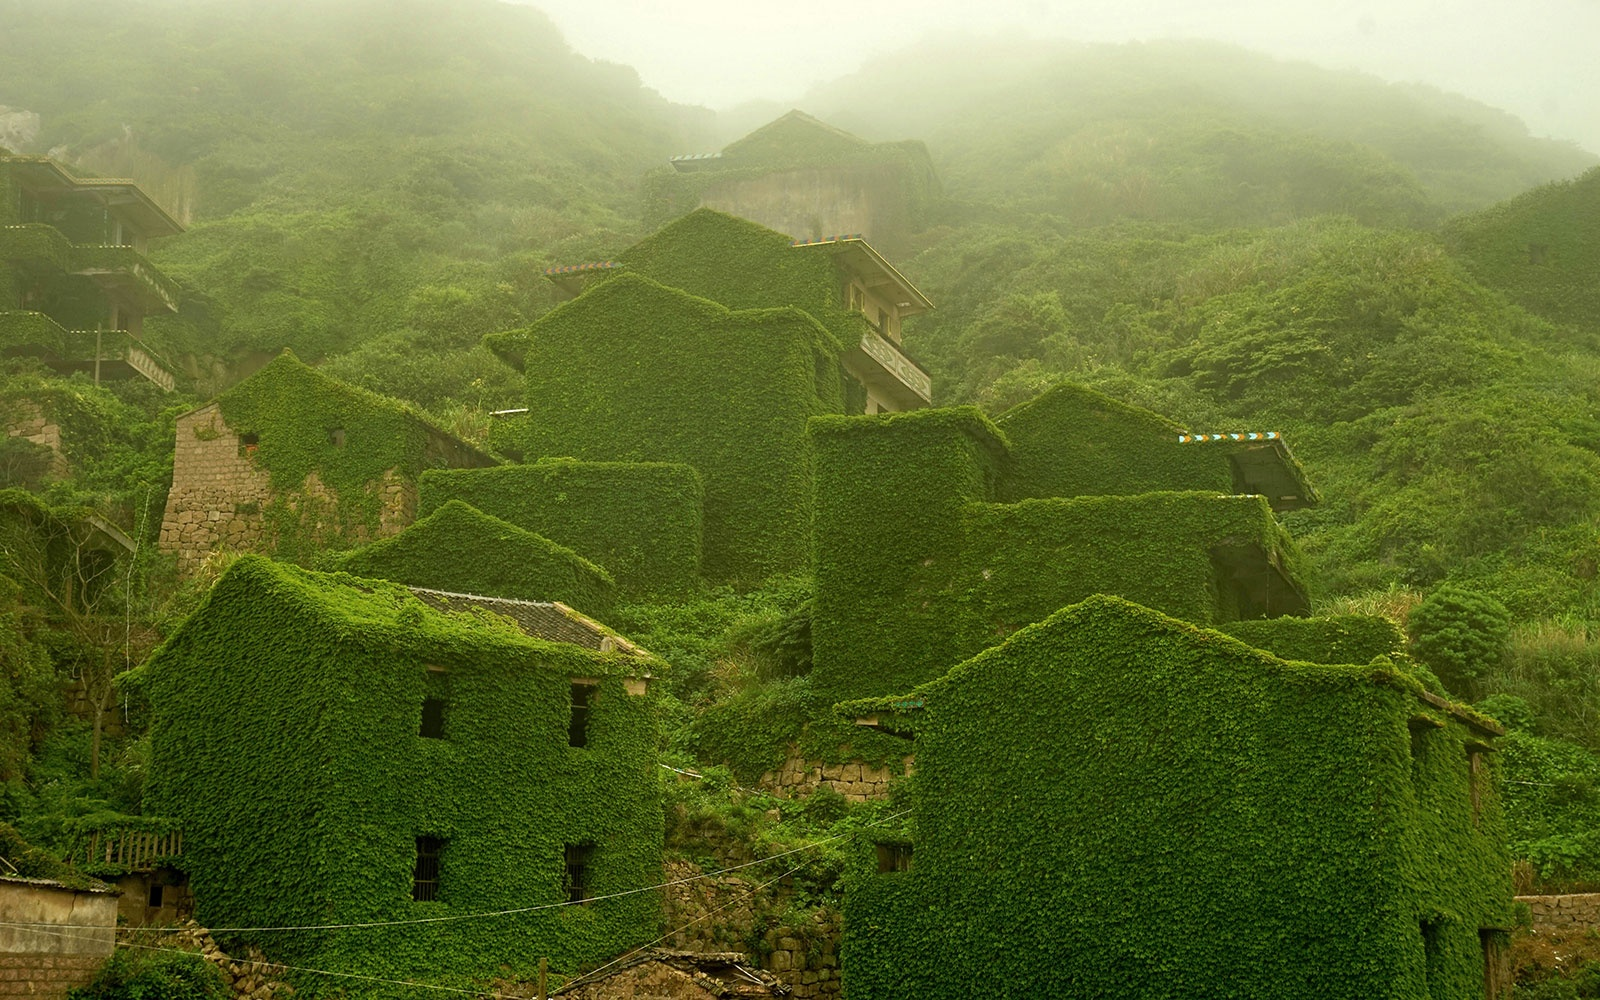 Hypnotic Images of a Chinese Ghost Town Completely Taken Over by Vegetation